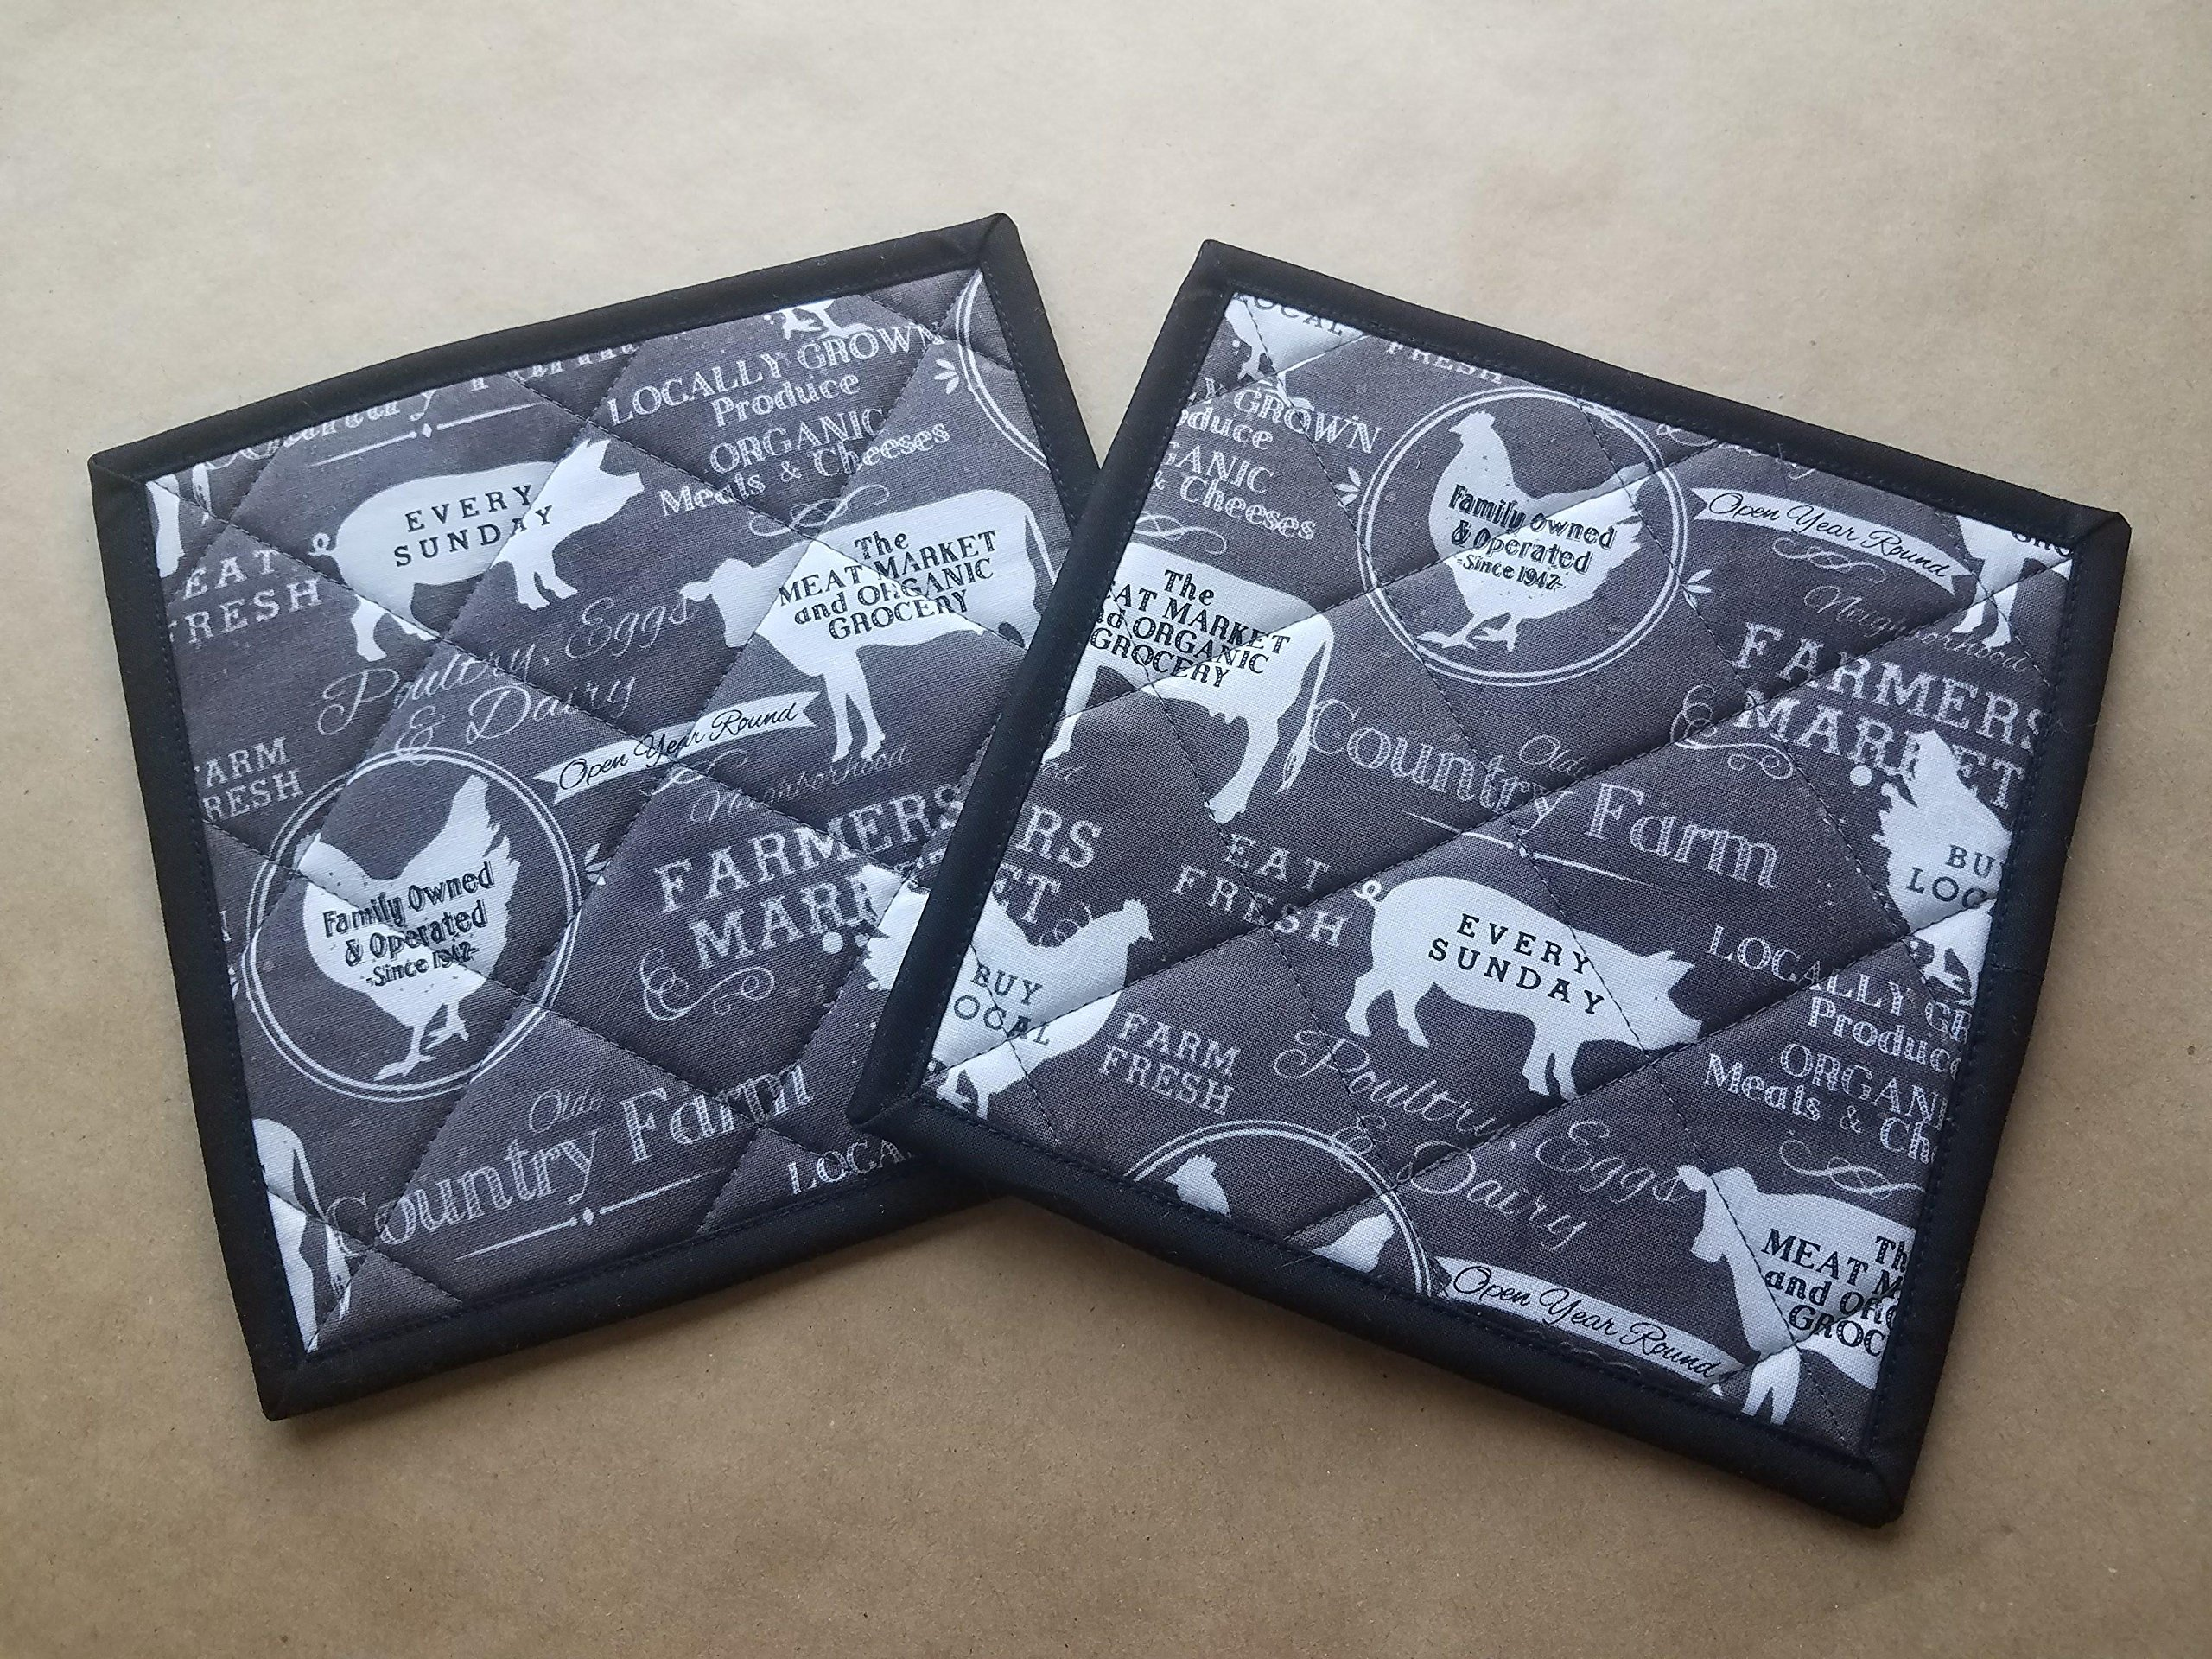 Set of 2 Grey and Black Farmer's Market Chalkboard Themed Potholders, Pig, Cow, Chicken, Organic, Grocer, Farmer's Market, Country Home Decor, Farmhouse Kitchen Linens, Trivet, Hot Pad